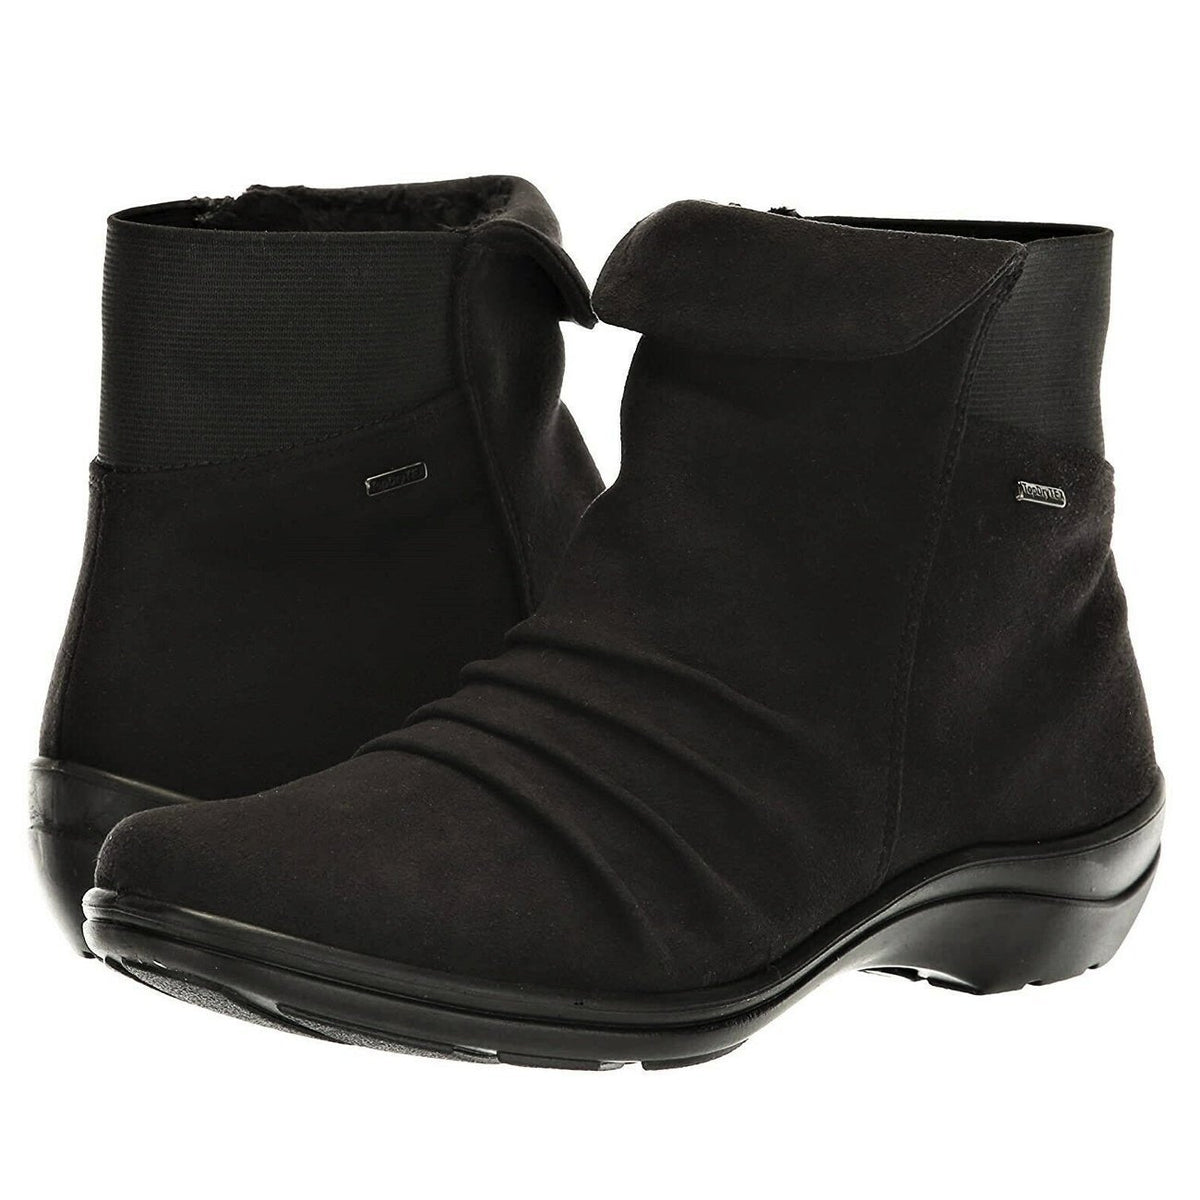 Romika, Cassie 48, Textile Upper Boot, Waterproof, Black Boots Romika